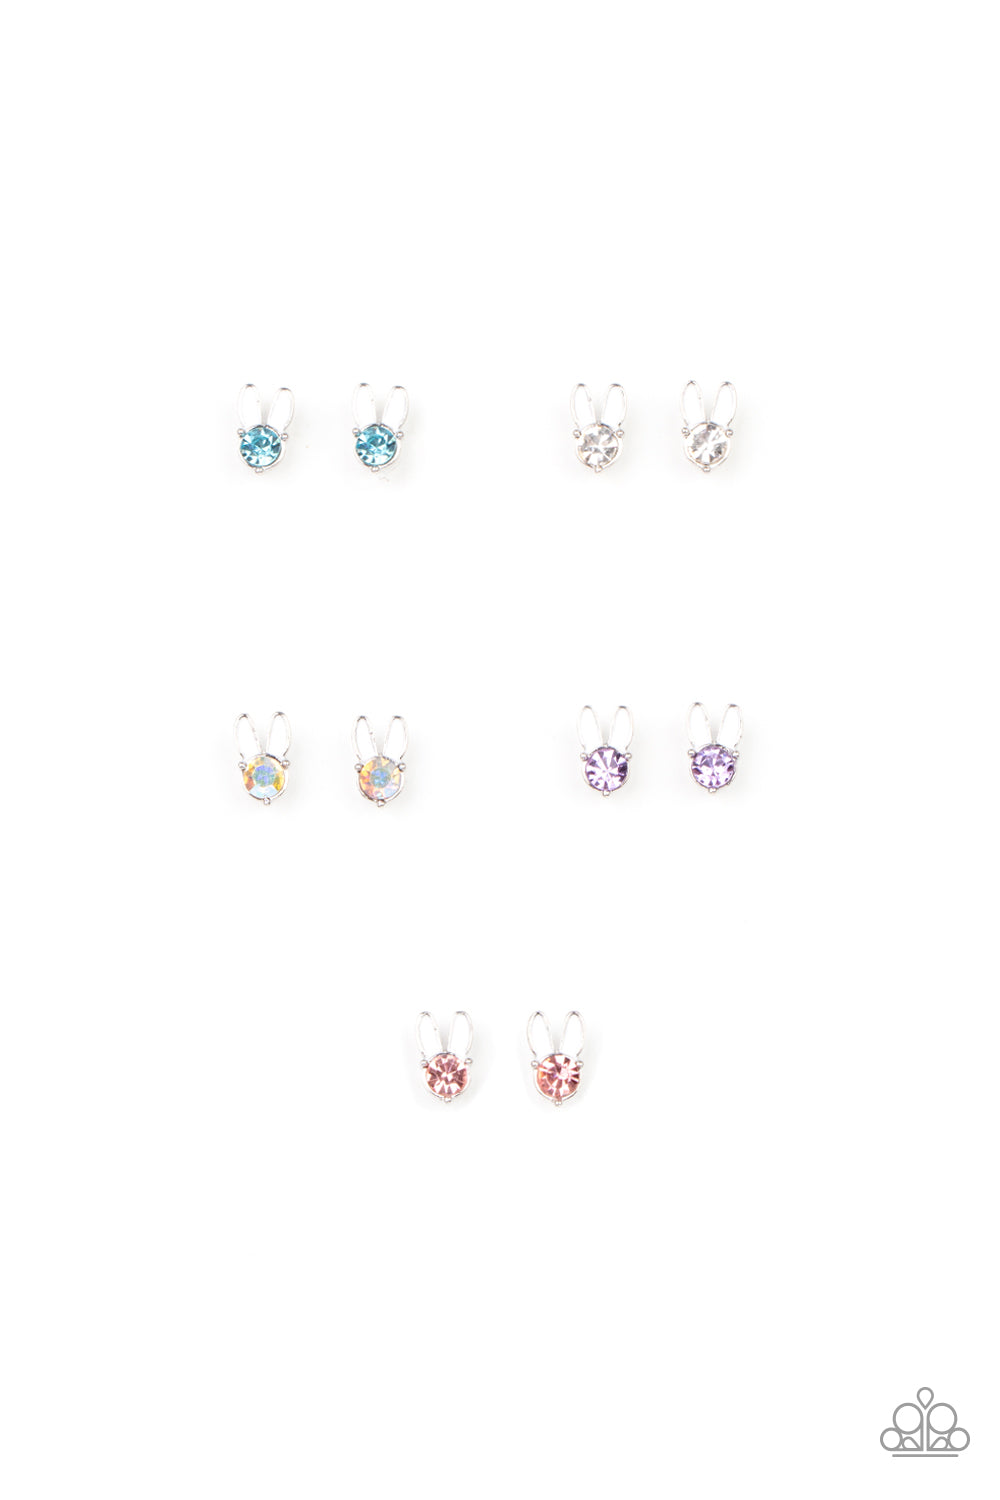 starlet shimmers (bunny earrings)